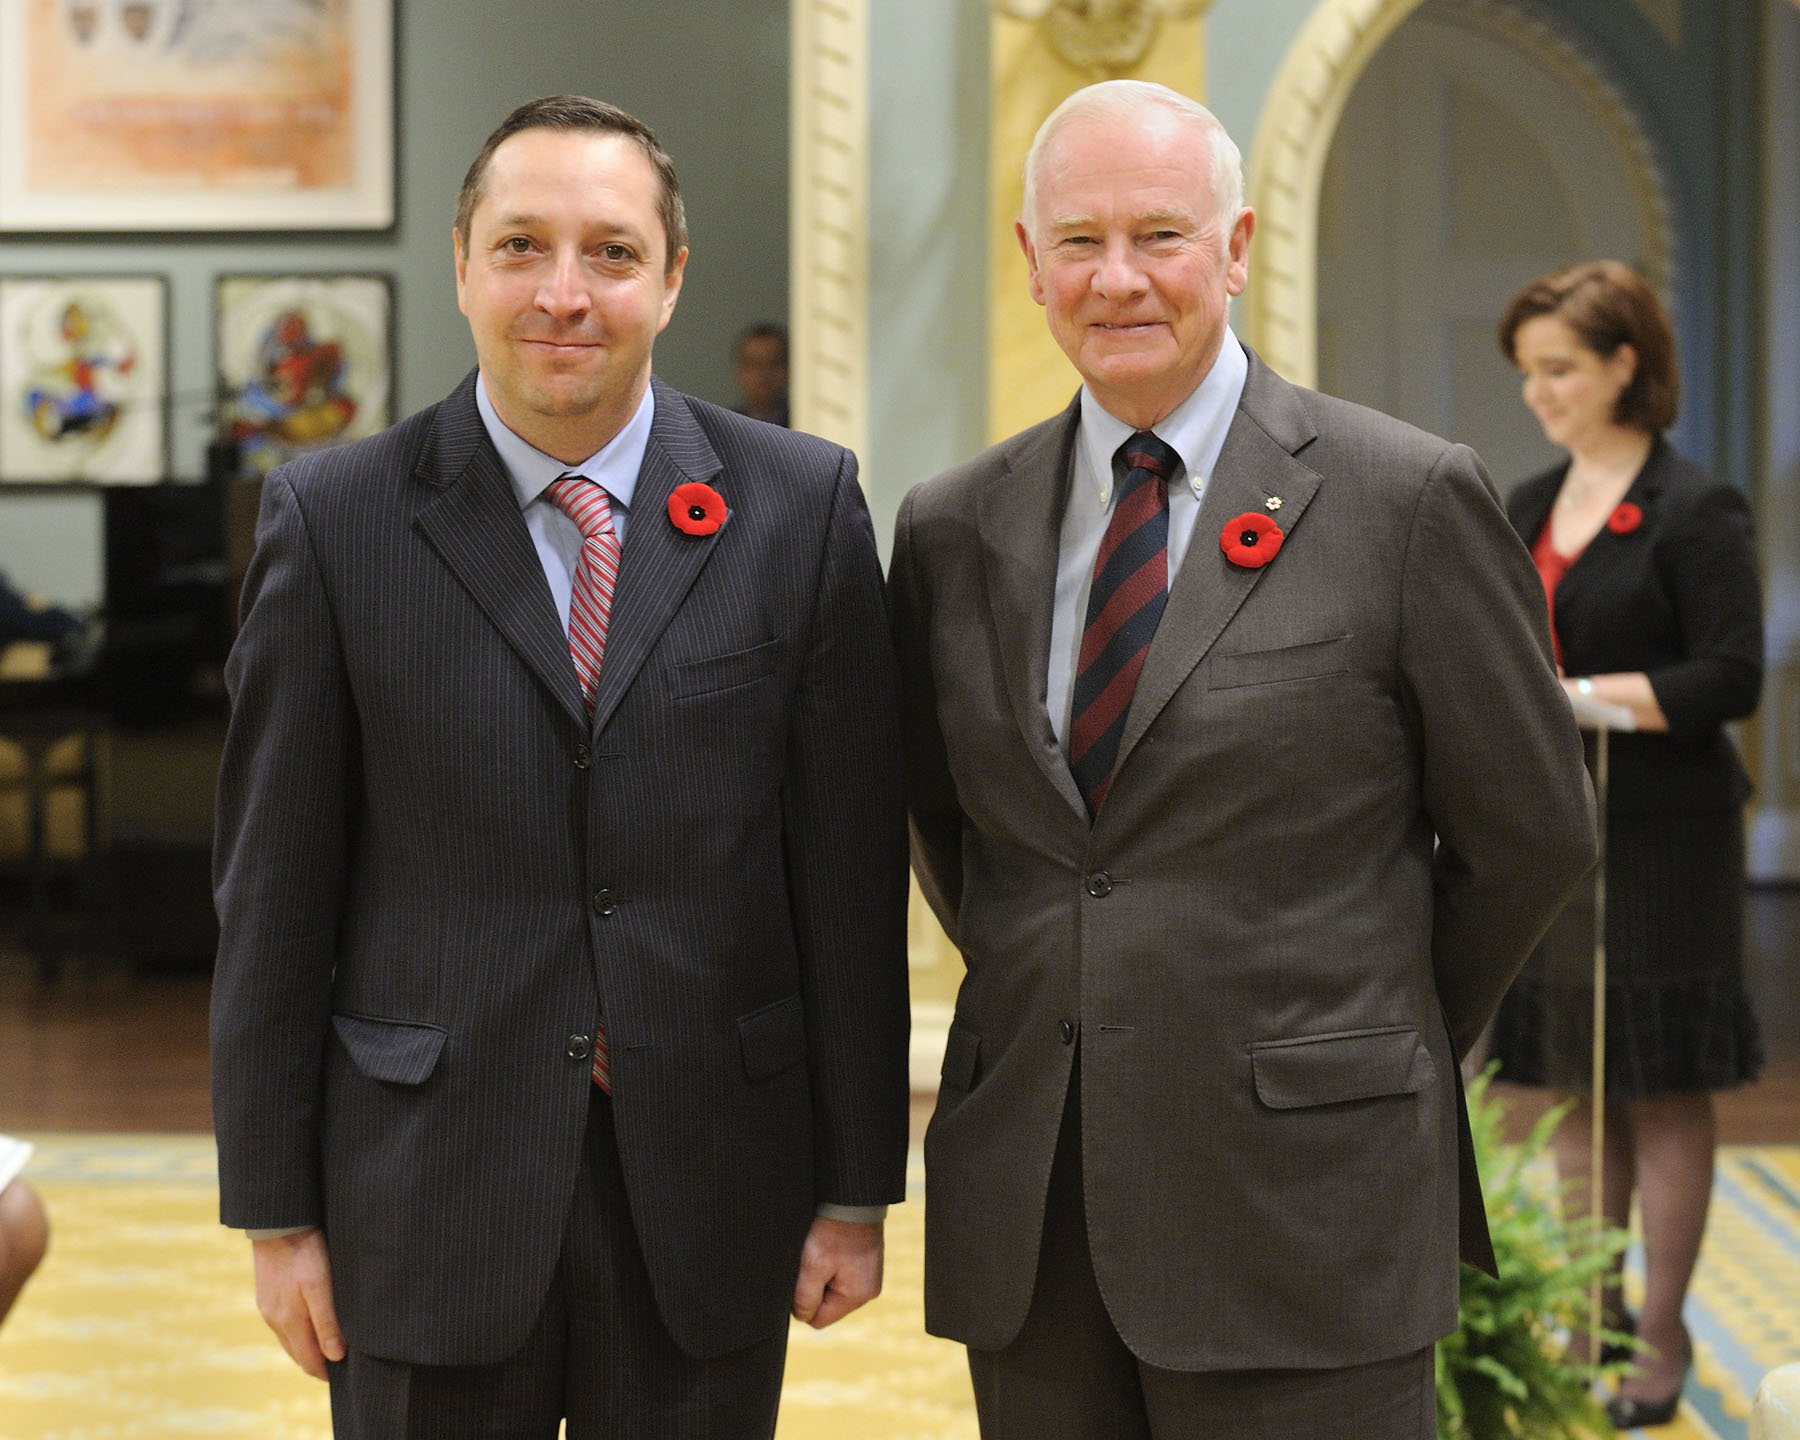 The Governor General received the credentials of His Excellency Alexander Latsabidze, Ambassador of Georgia.